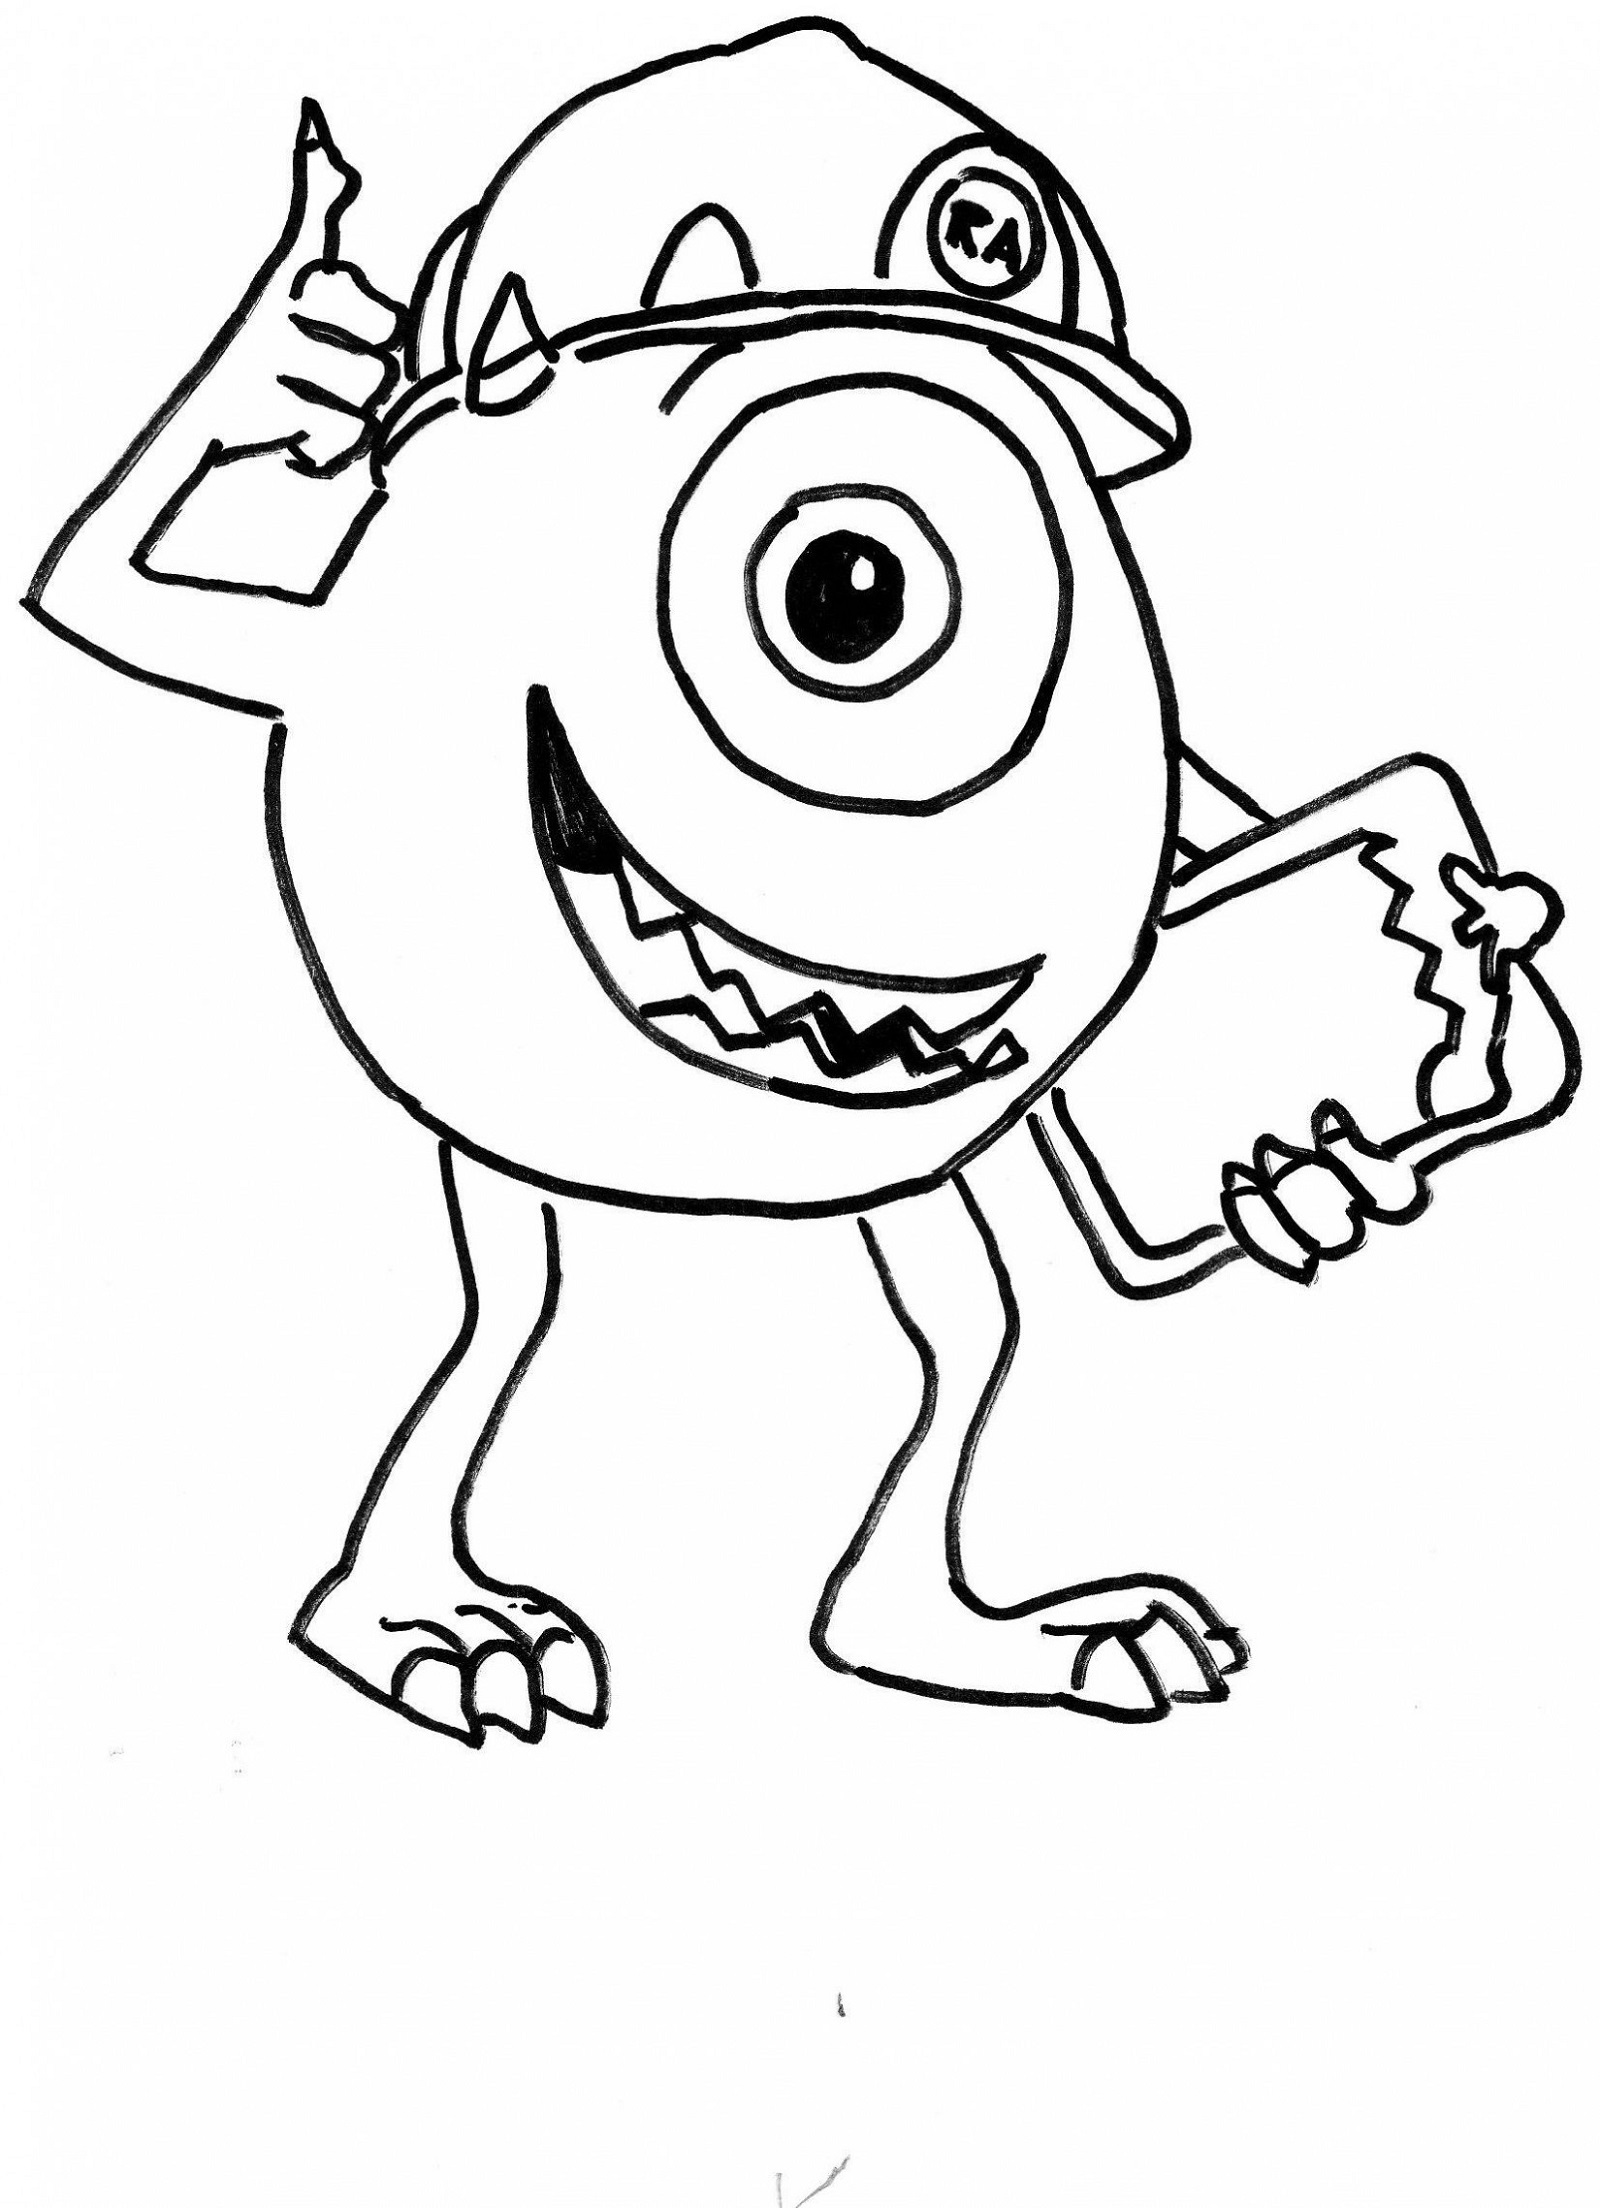 Free Coloring Pages for Boys Cartoon